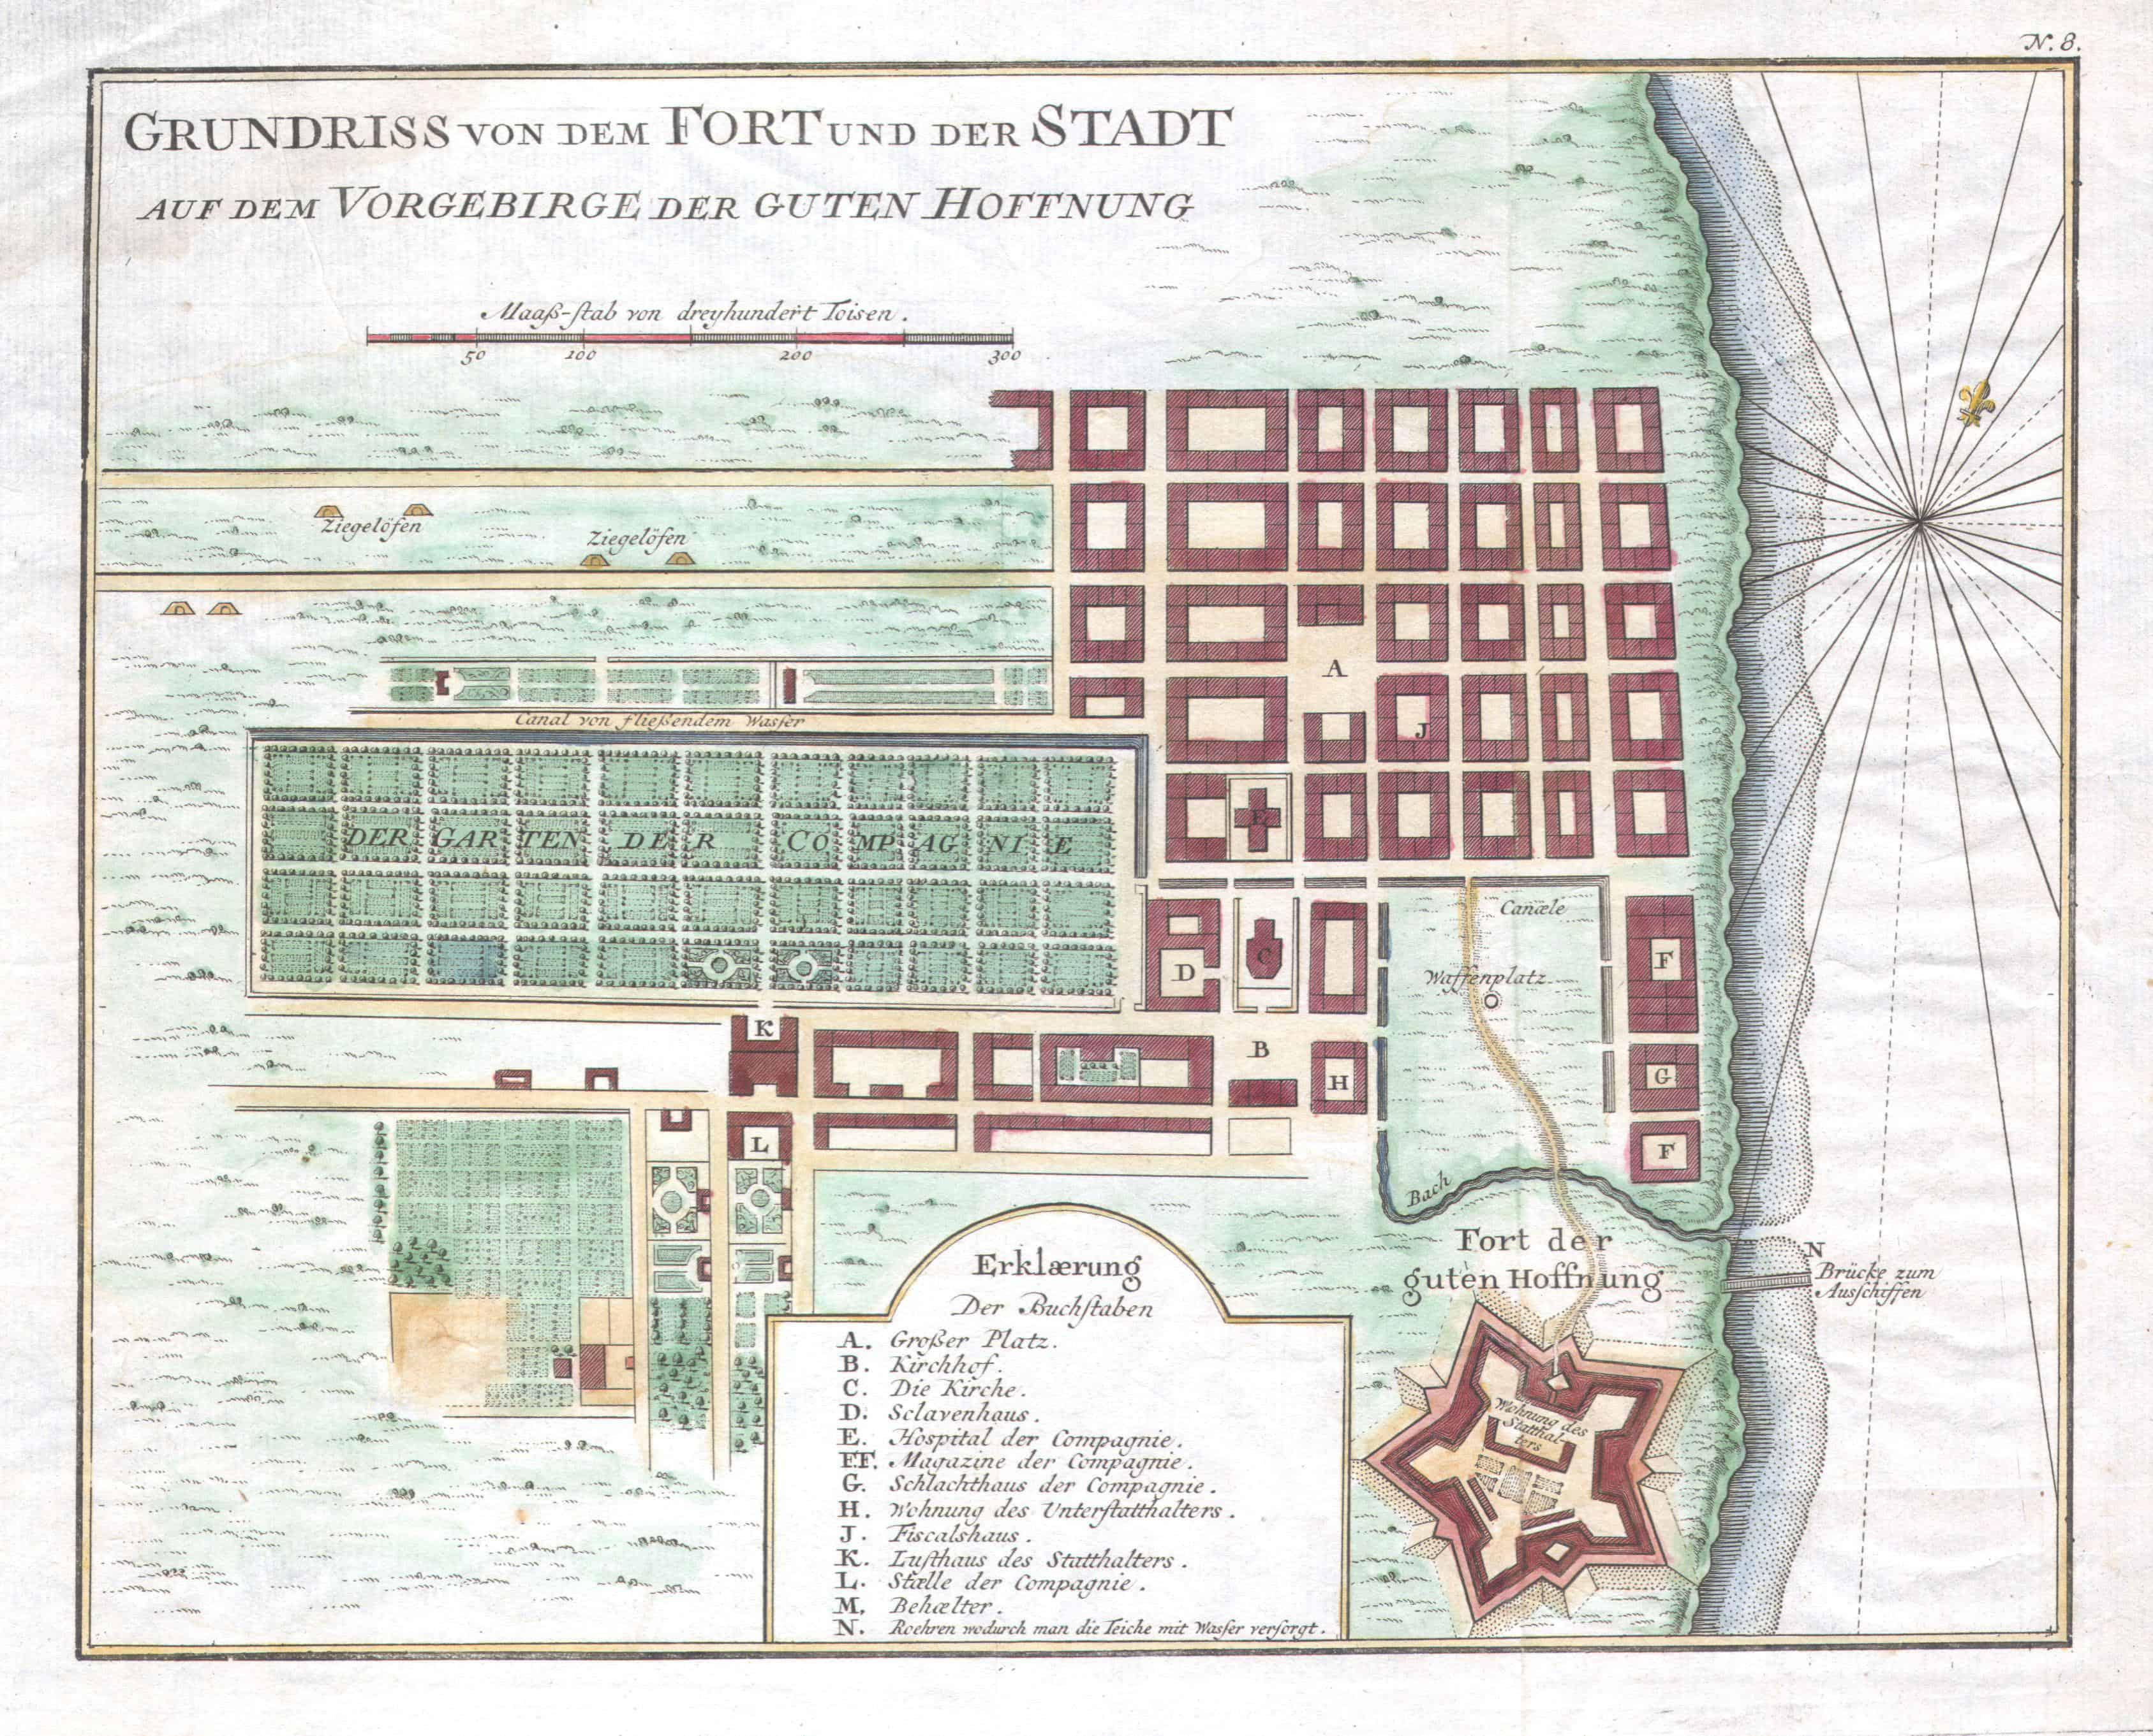 Map of Cape Town in 1750